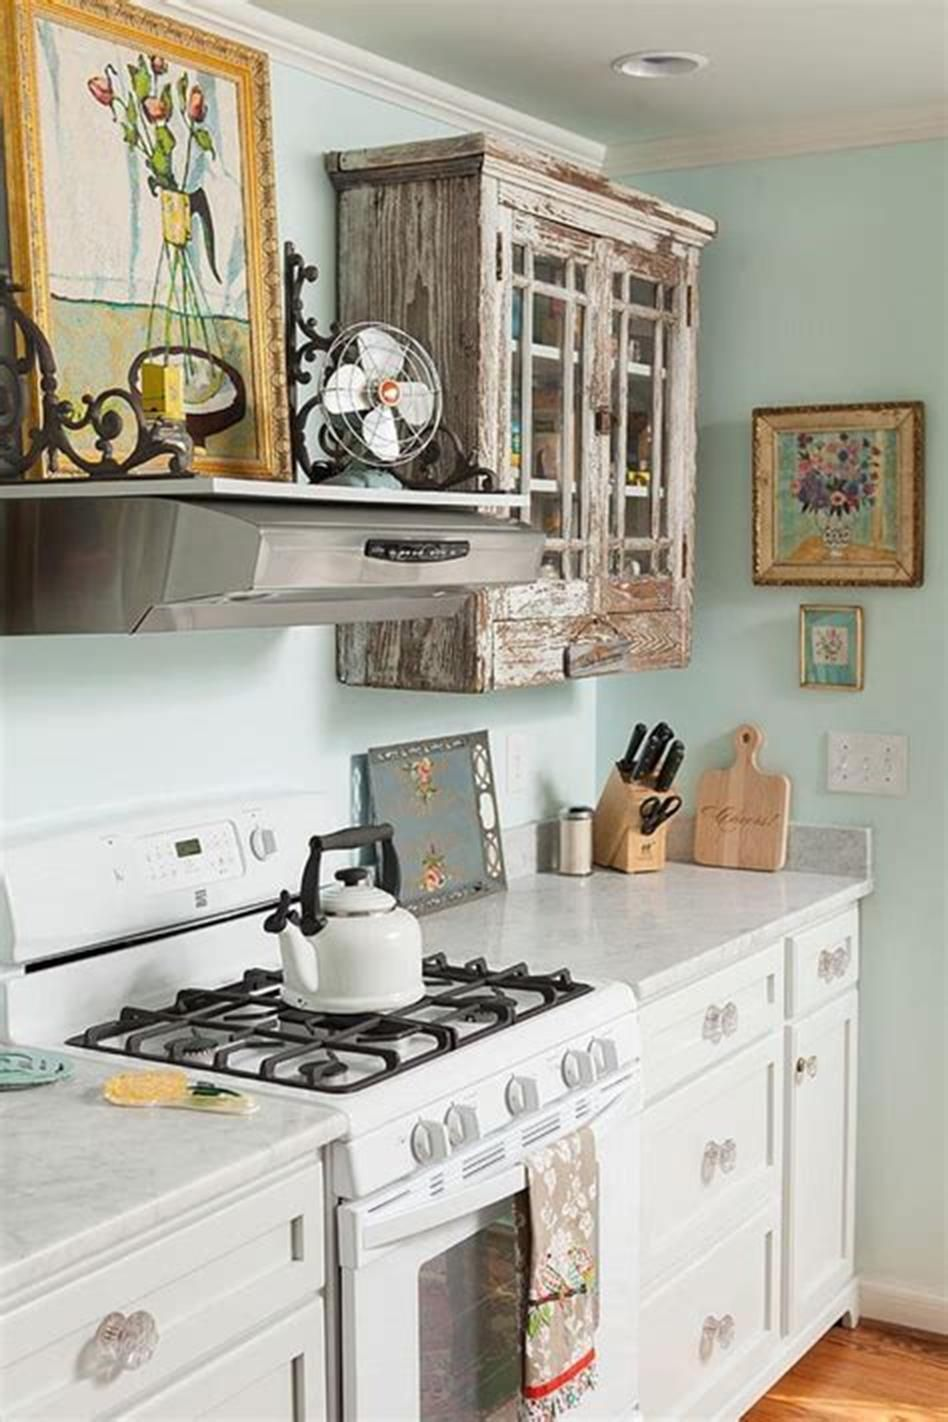 43 Best Kitchen Decorating Ideas on a Budget | Shabby chic ...